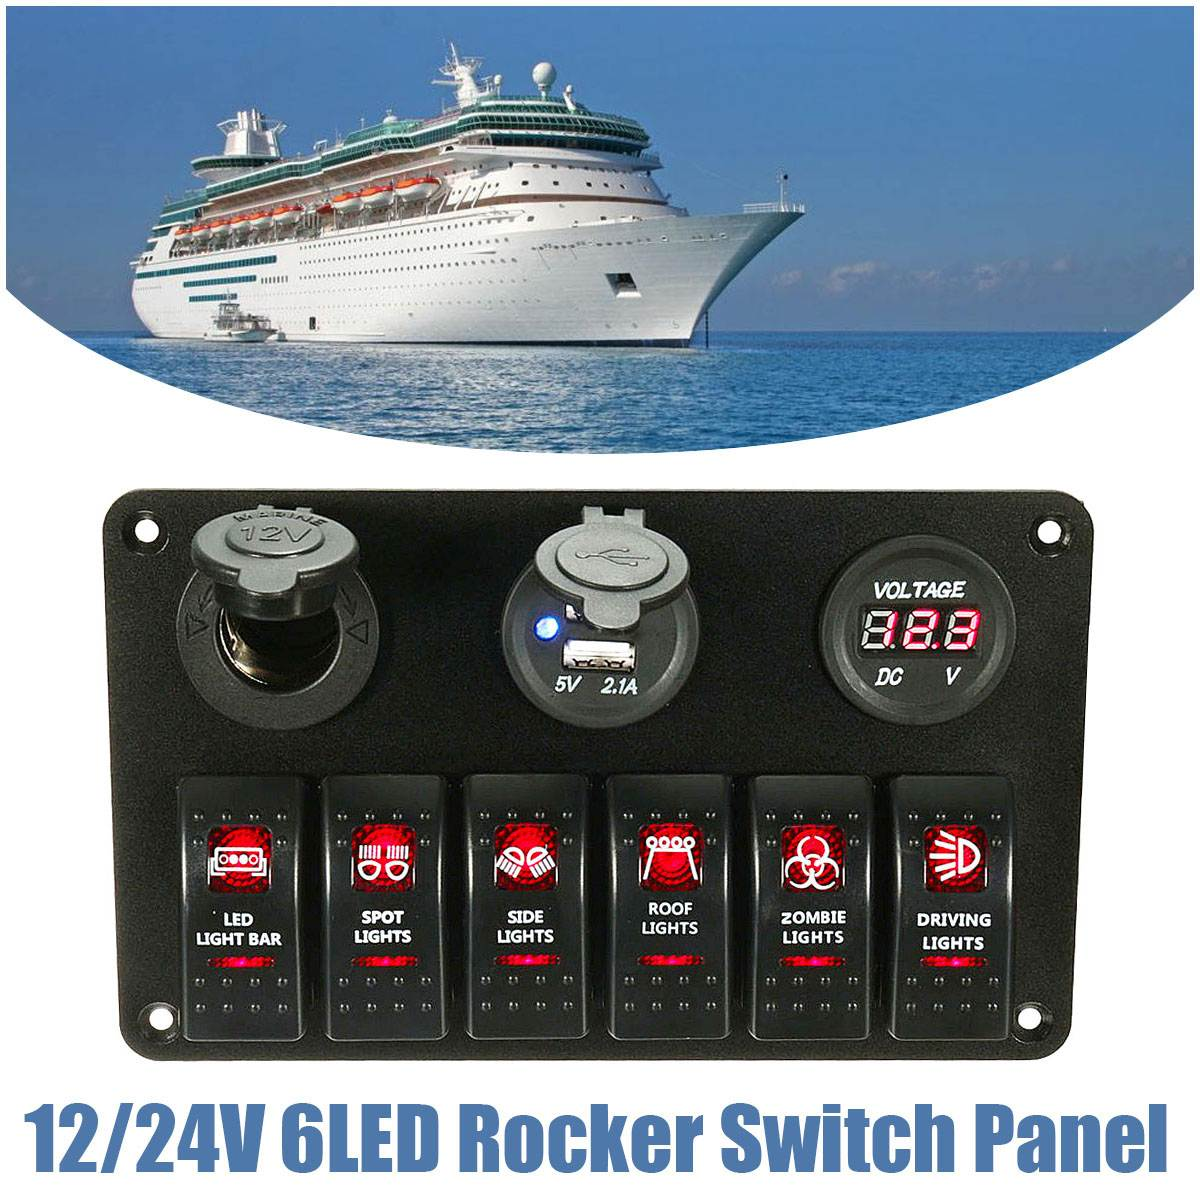 2 USB Socket 6 Gang Red LED Rocker Switch Cigarette Plug Voltage Panel Marine Boat RV 24v 12v red blue led boat switch panel switches waterproof car cigarette lighter socket rv yacht marine boating accessories